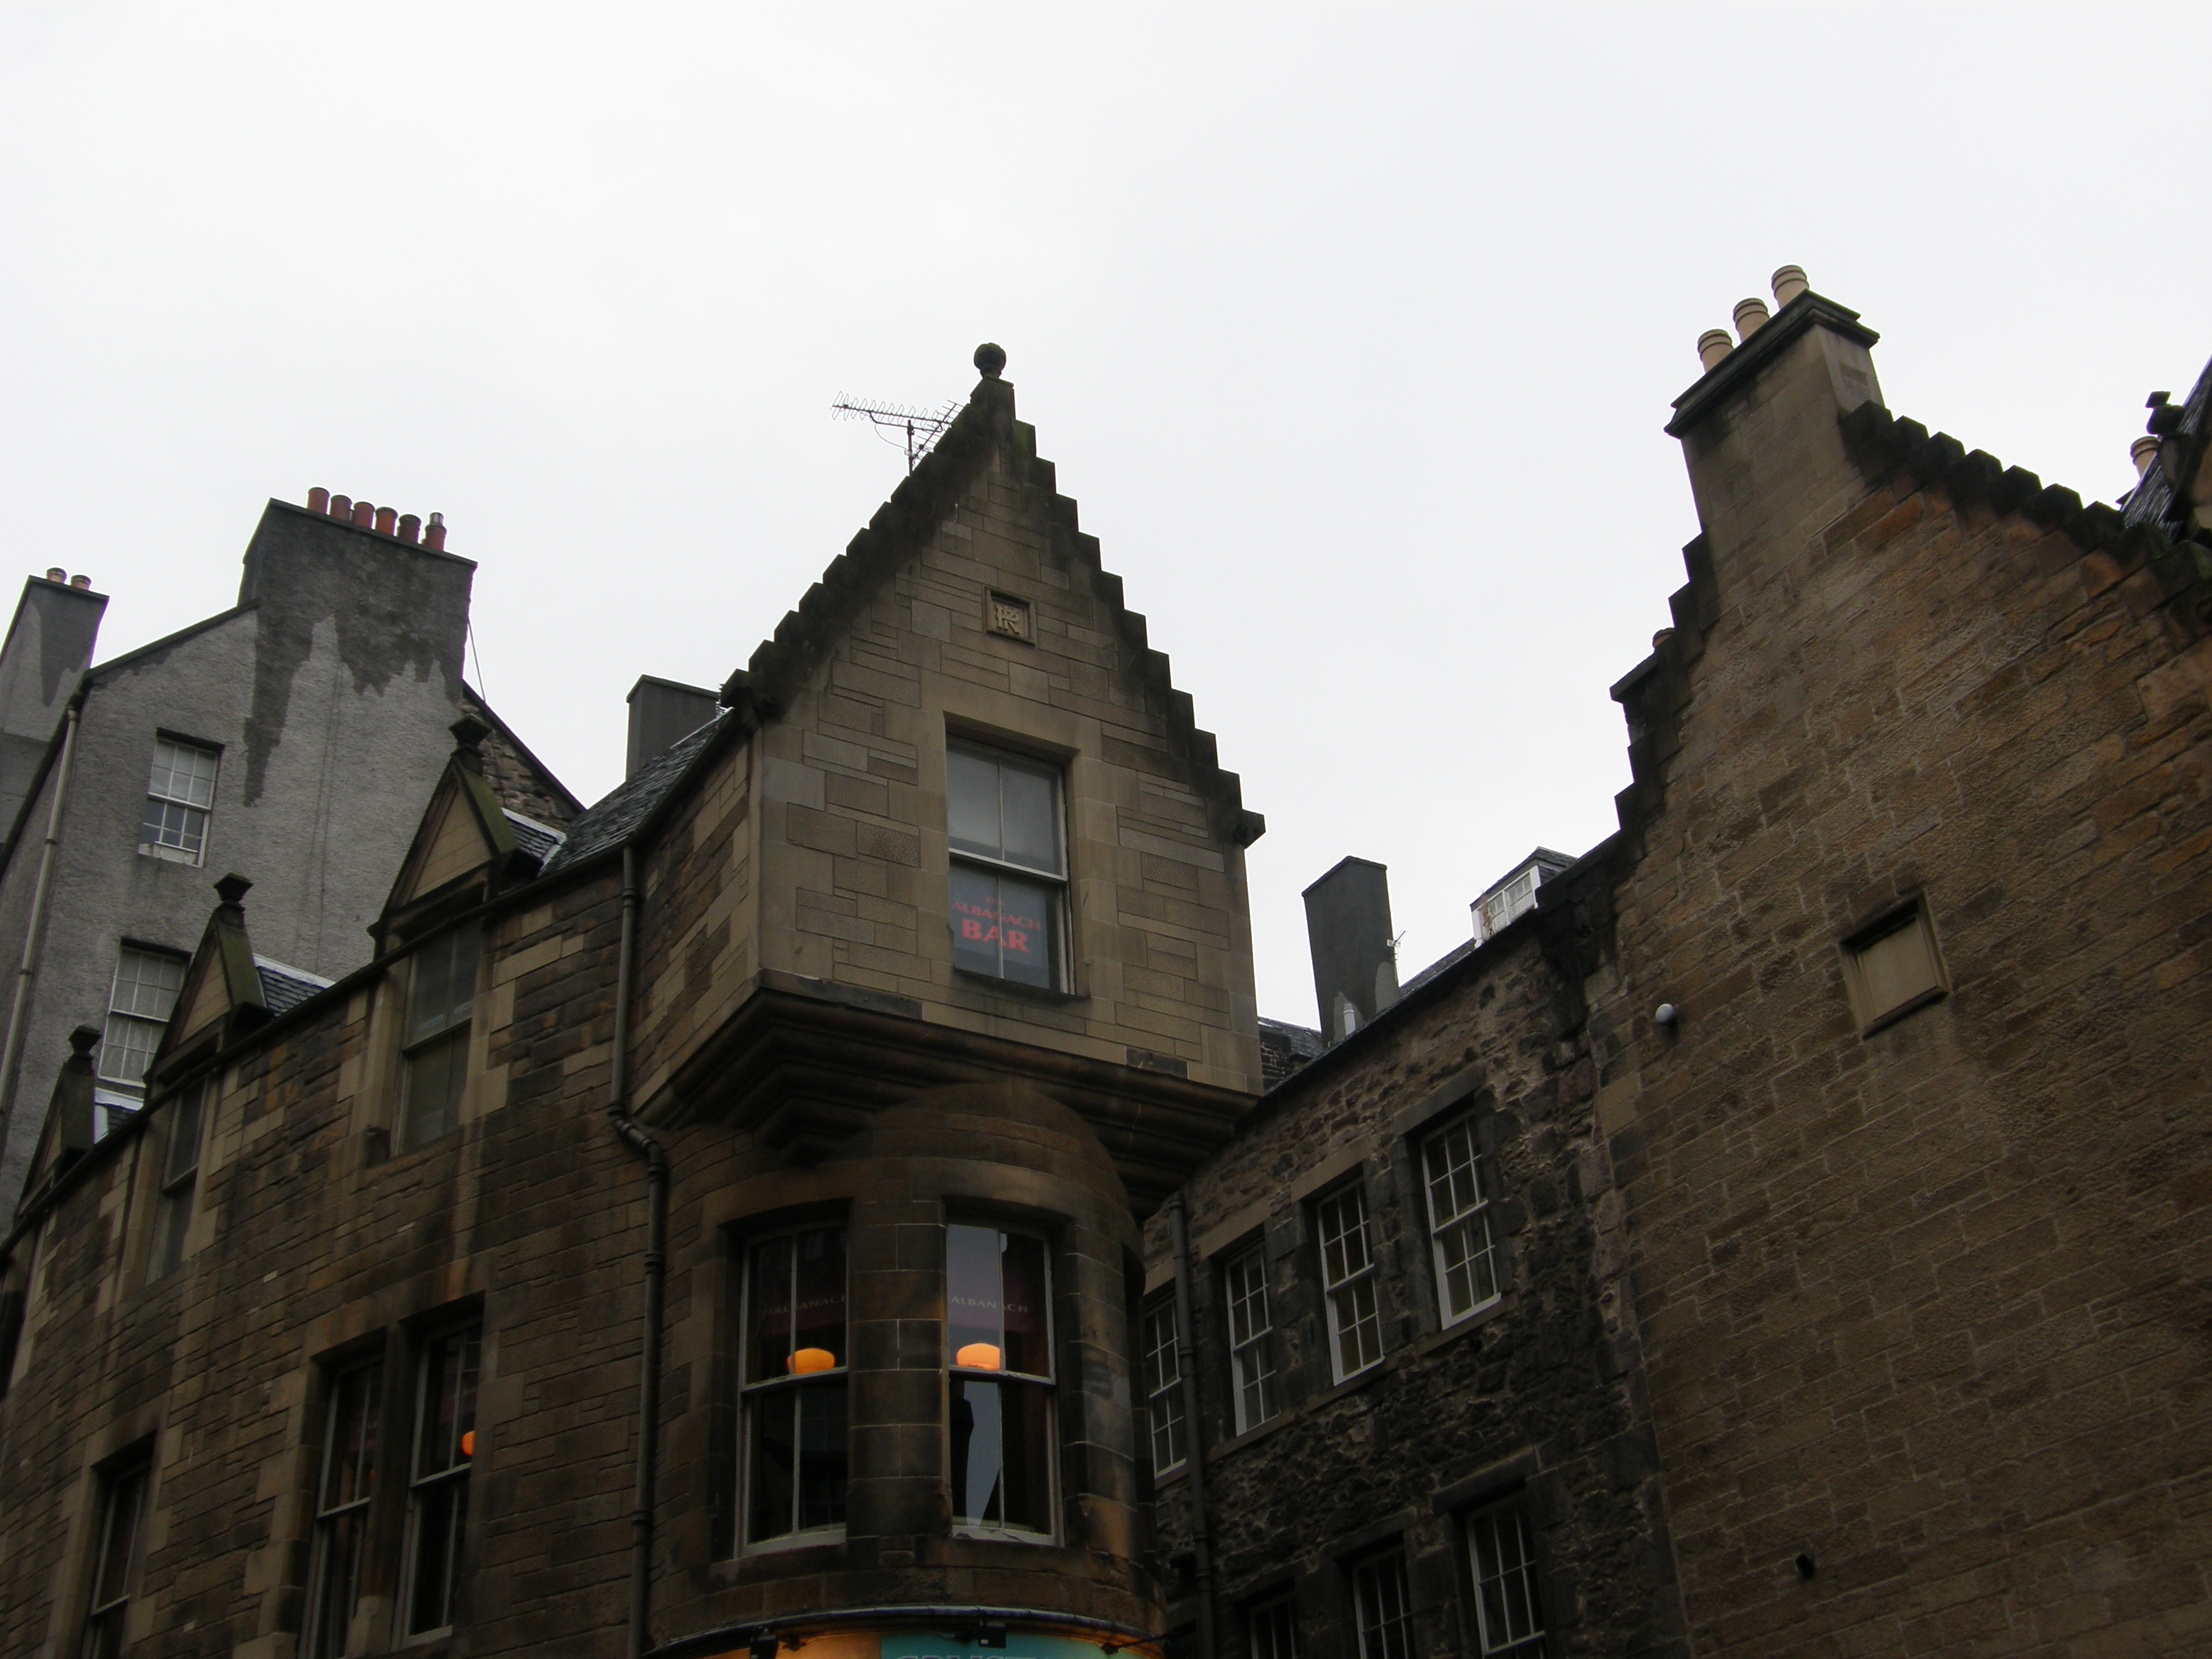 Old and New Towns of Edinburgh - United Kingdom of Great Britain and Northern Ireland